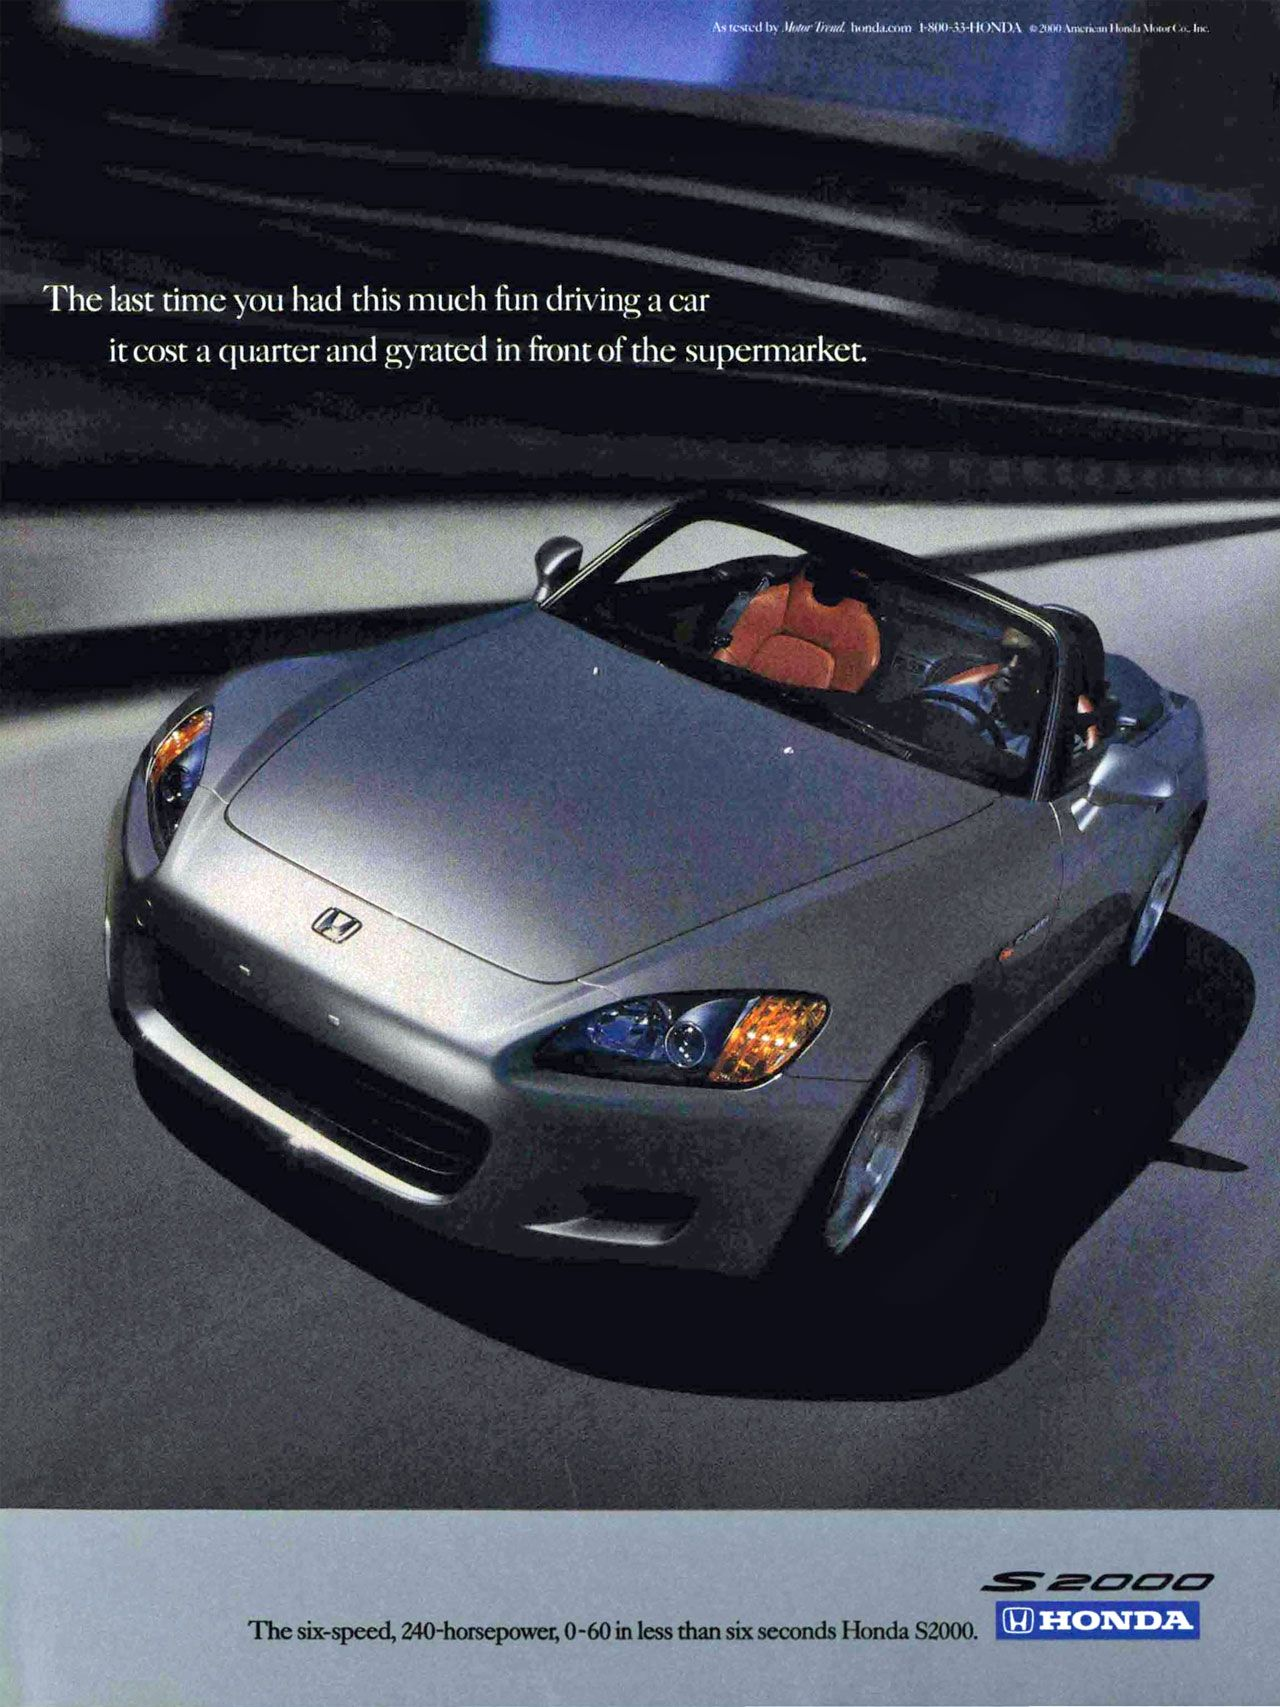 The last time you had this much fun driving a car it cost a quarter and gyrated in front of the supermarket. The six-speed, 240-horsepower, 0-60 in less than six seconds Honda S2000.